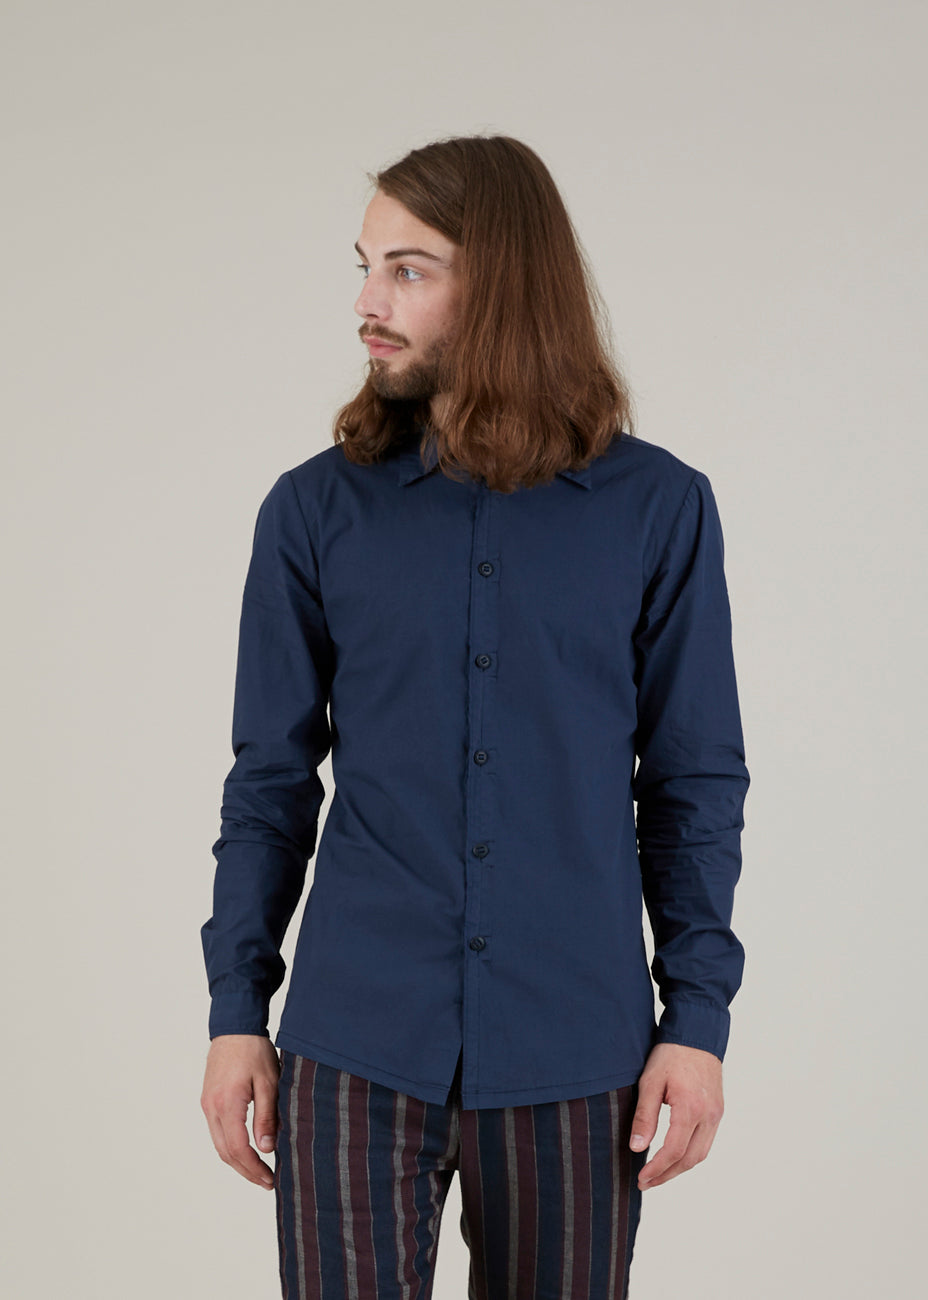 Hannes Roether Men's Fringe Button Up Shirt